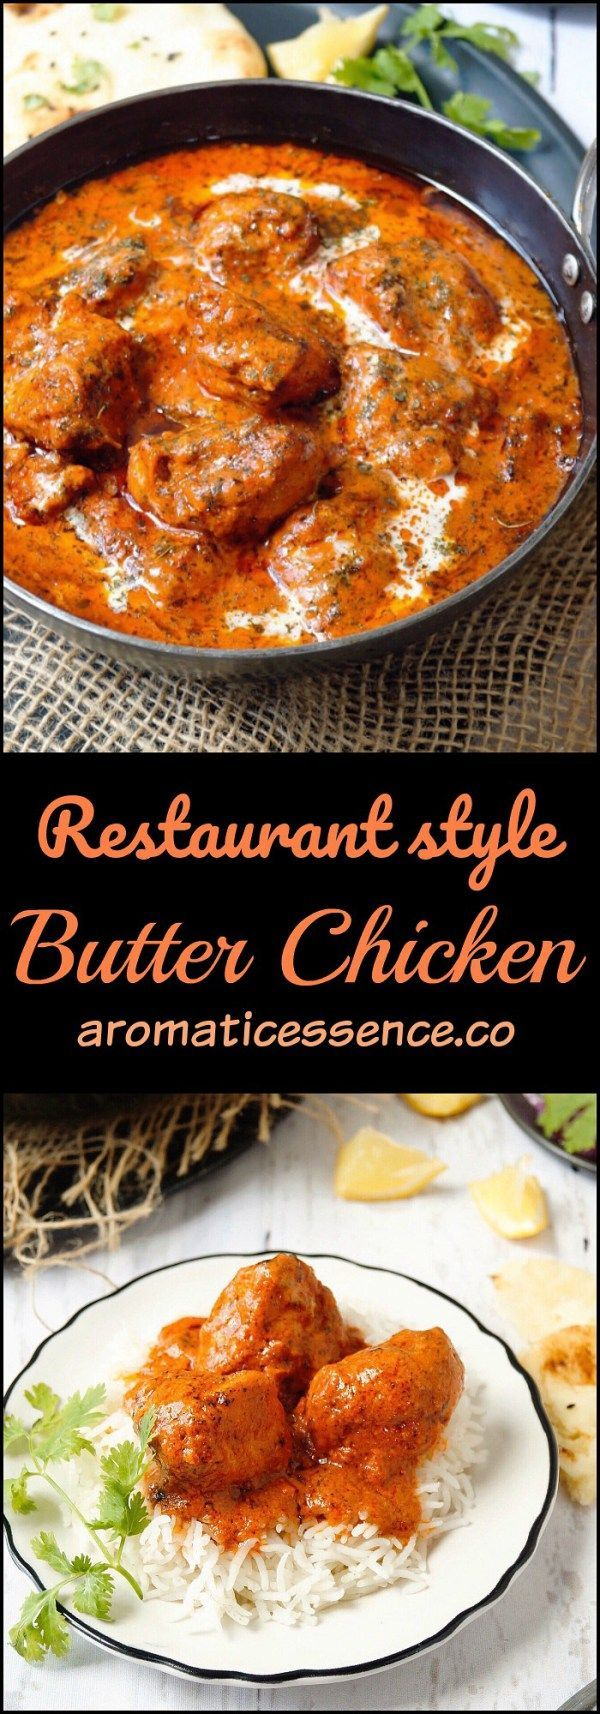 Butter chicken (Murgh Makhani) | Easy butter chicken recipe with step wise pictorials. #butterchicken #murghmakhani #chickenmakhani #northindiancuisine #indianfood @aromaticessence